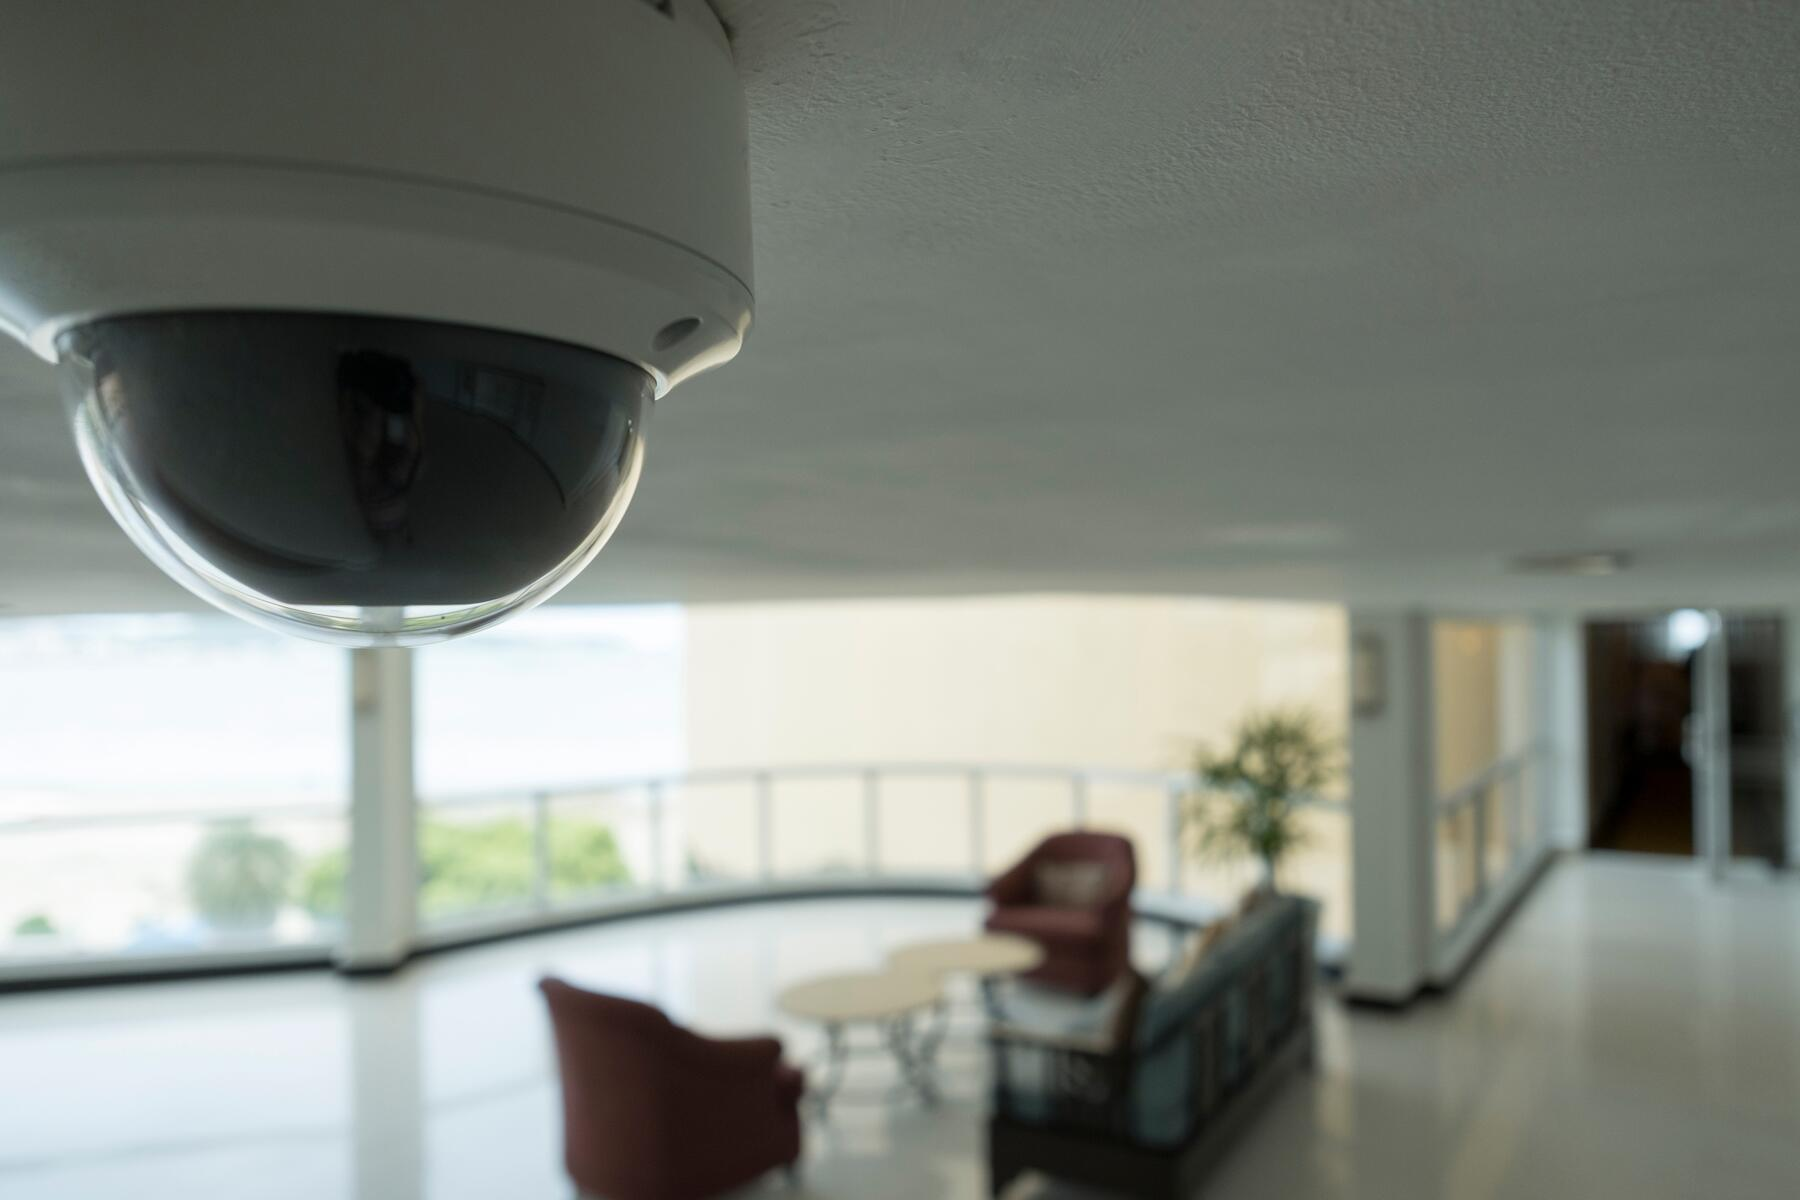 Can Hotels And Airbnbs Spy On Guests